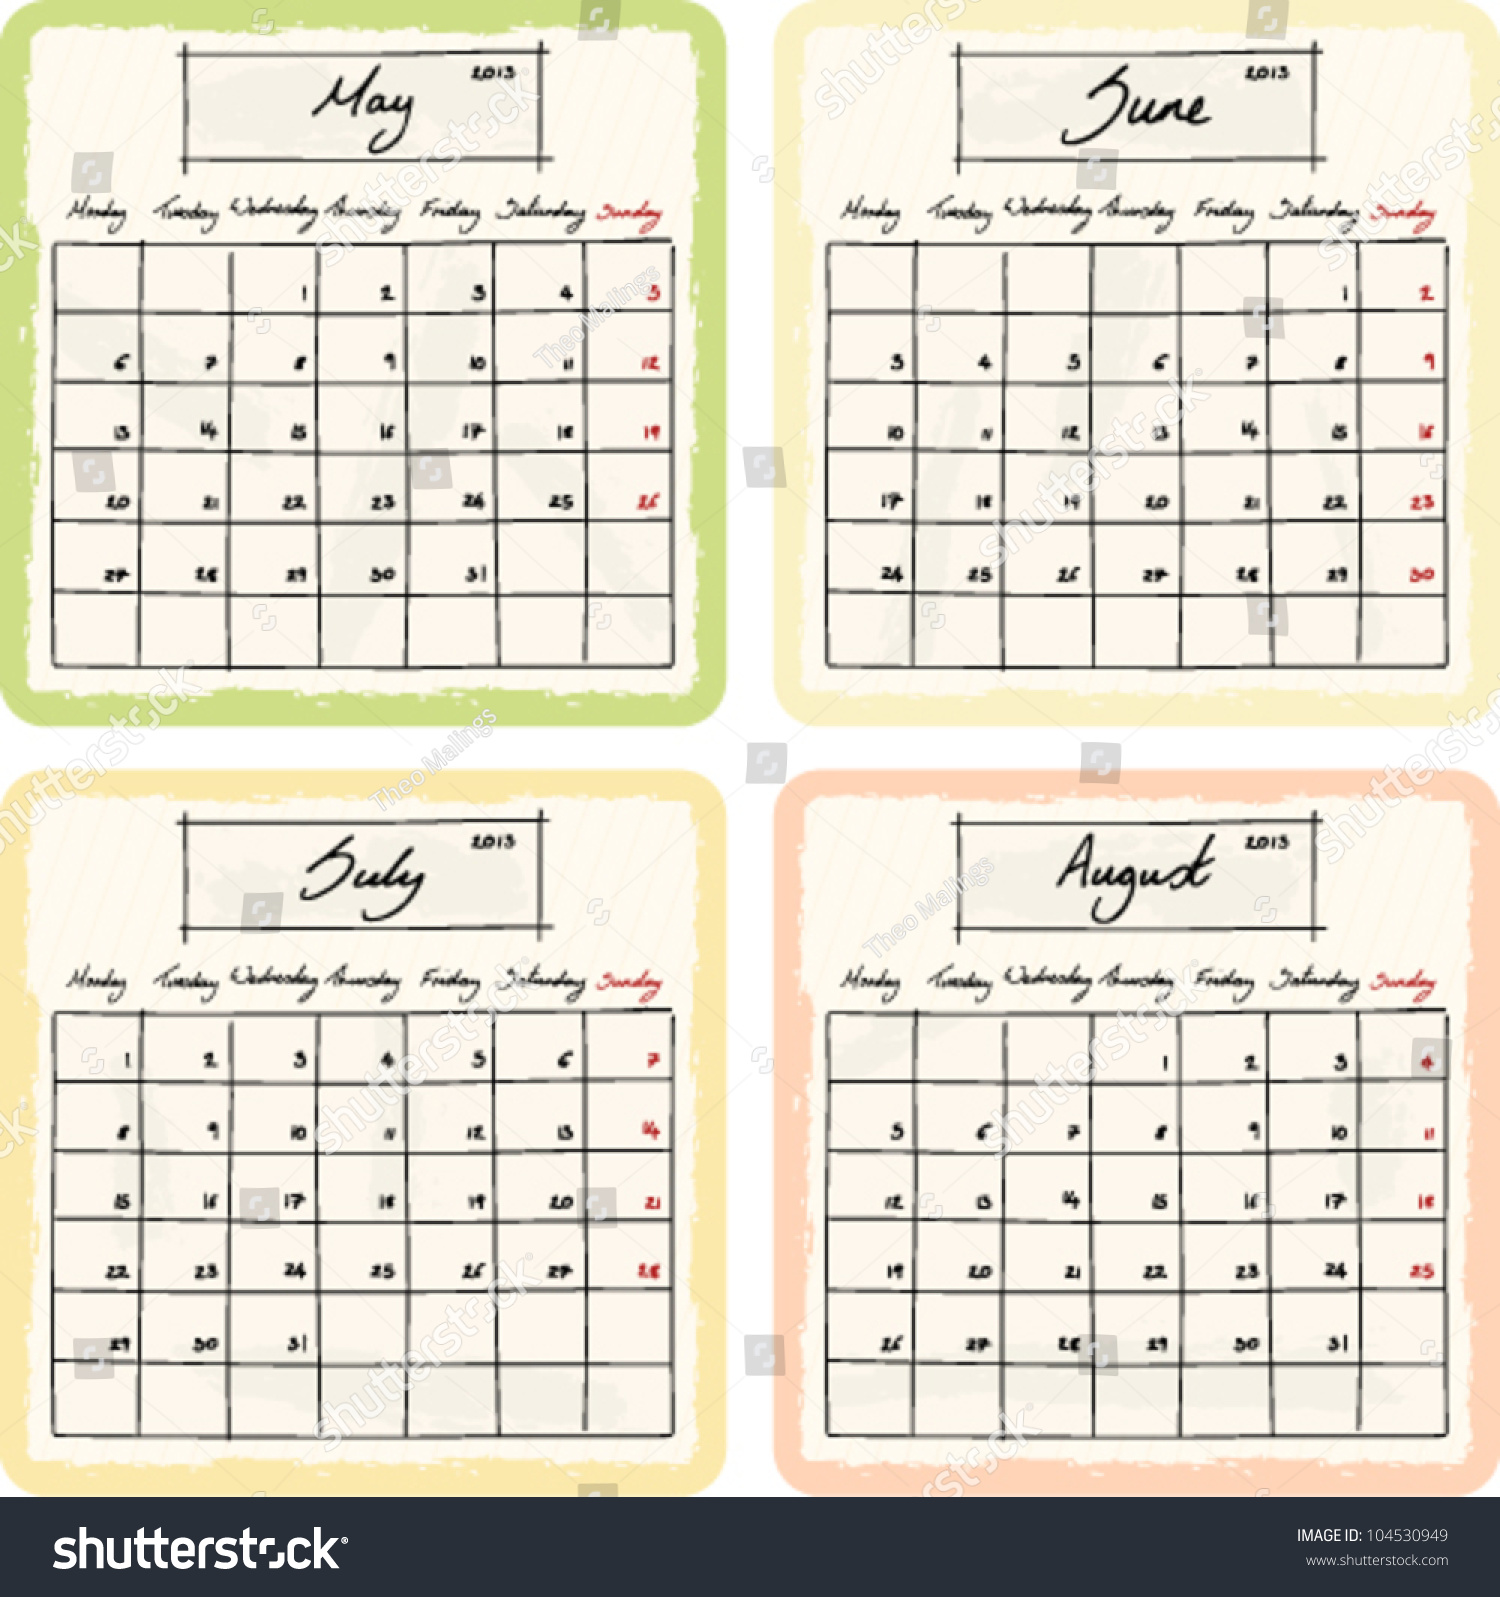 Calendar May June July August : Handwritten calendar grunge elements months stock